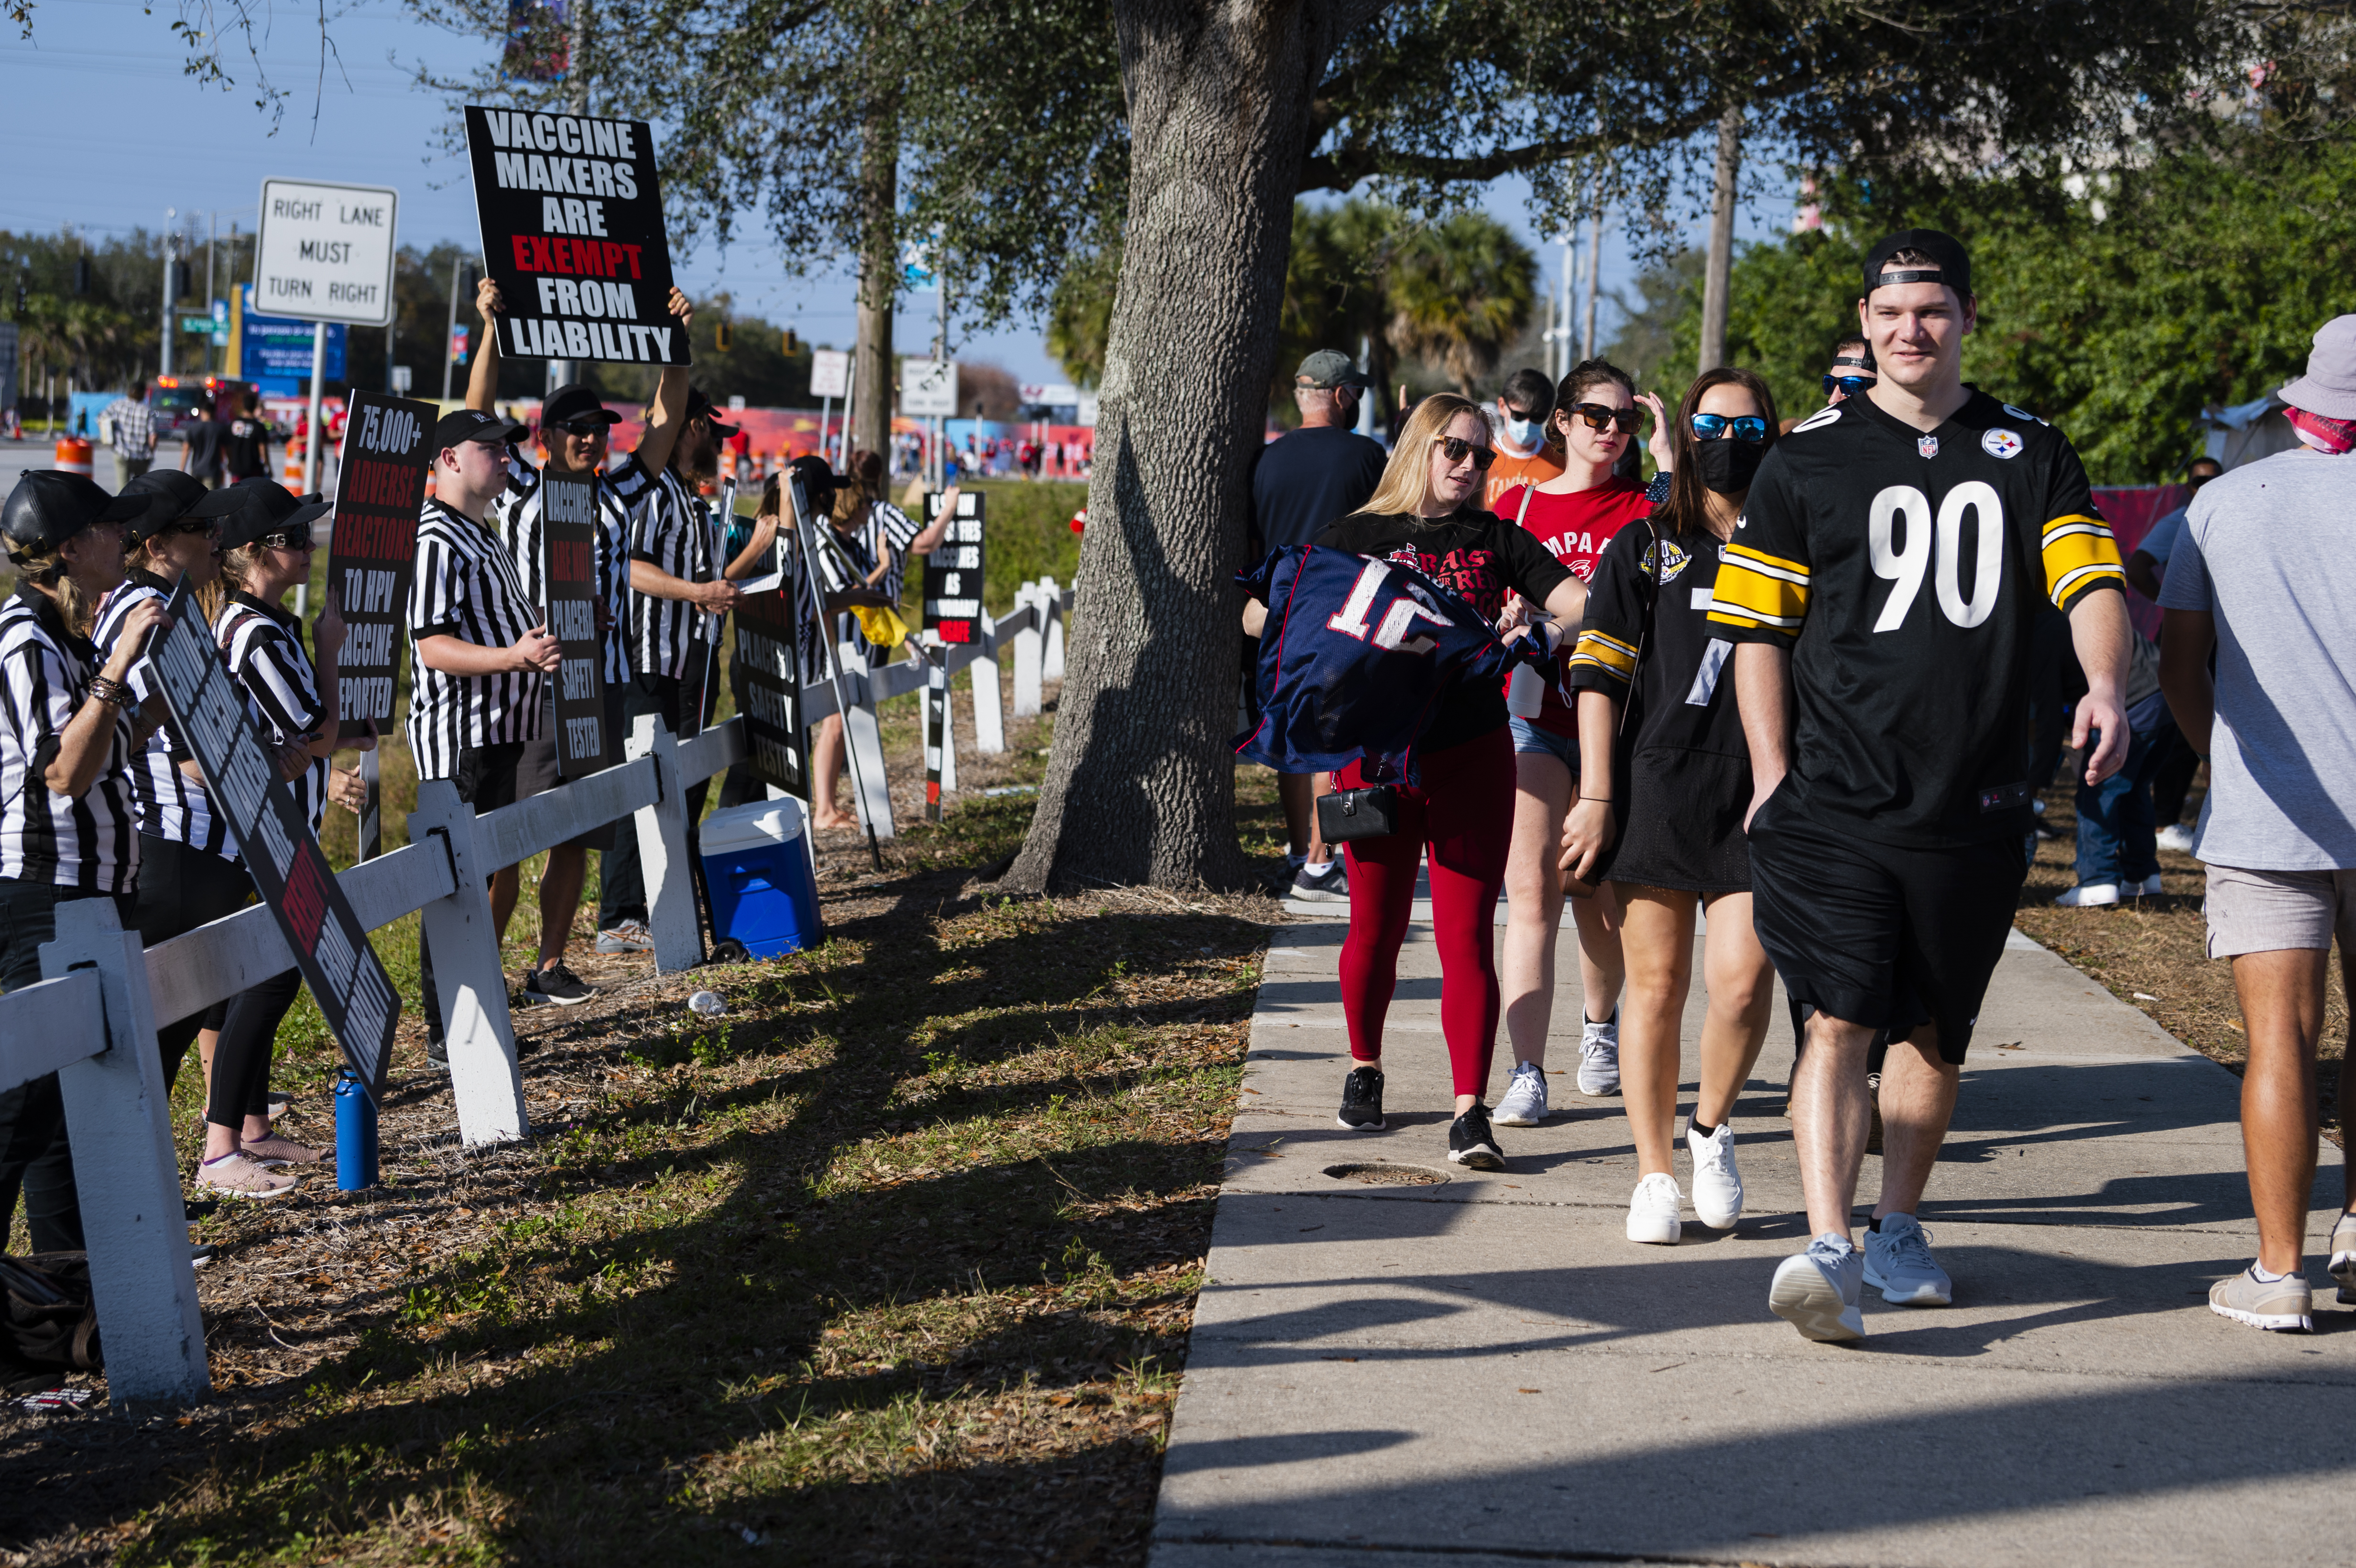 Fans pass by a protest against Covid-19 vaccine outside the Raymond James Stadium ahead of the Super Bowl LV game between Tampa Bay Buccaneers and Kansas City Chiefs in Tampa, Florida, United States on February 07, 2021.